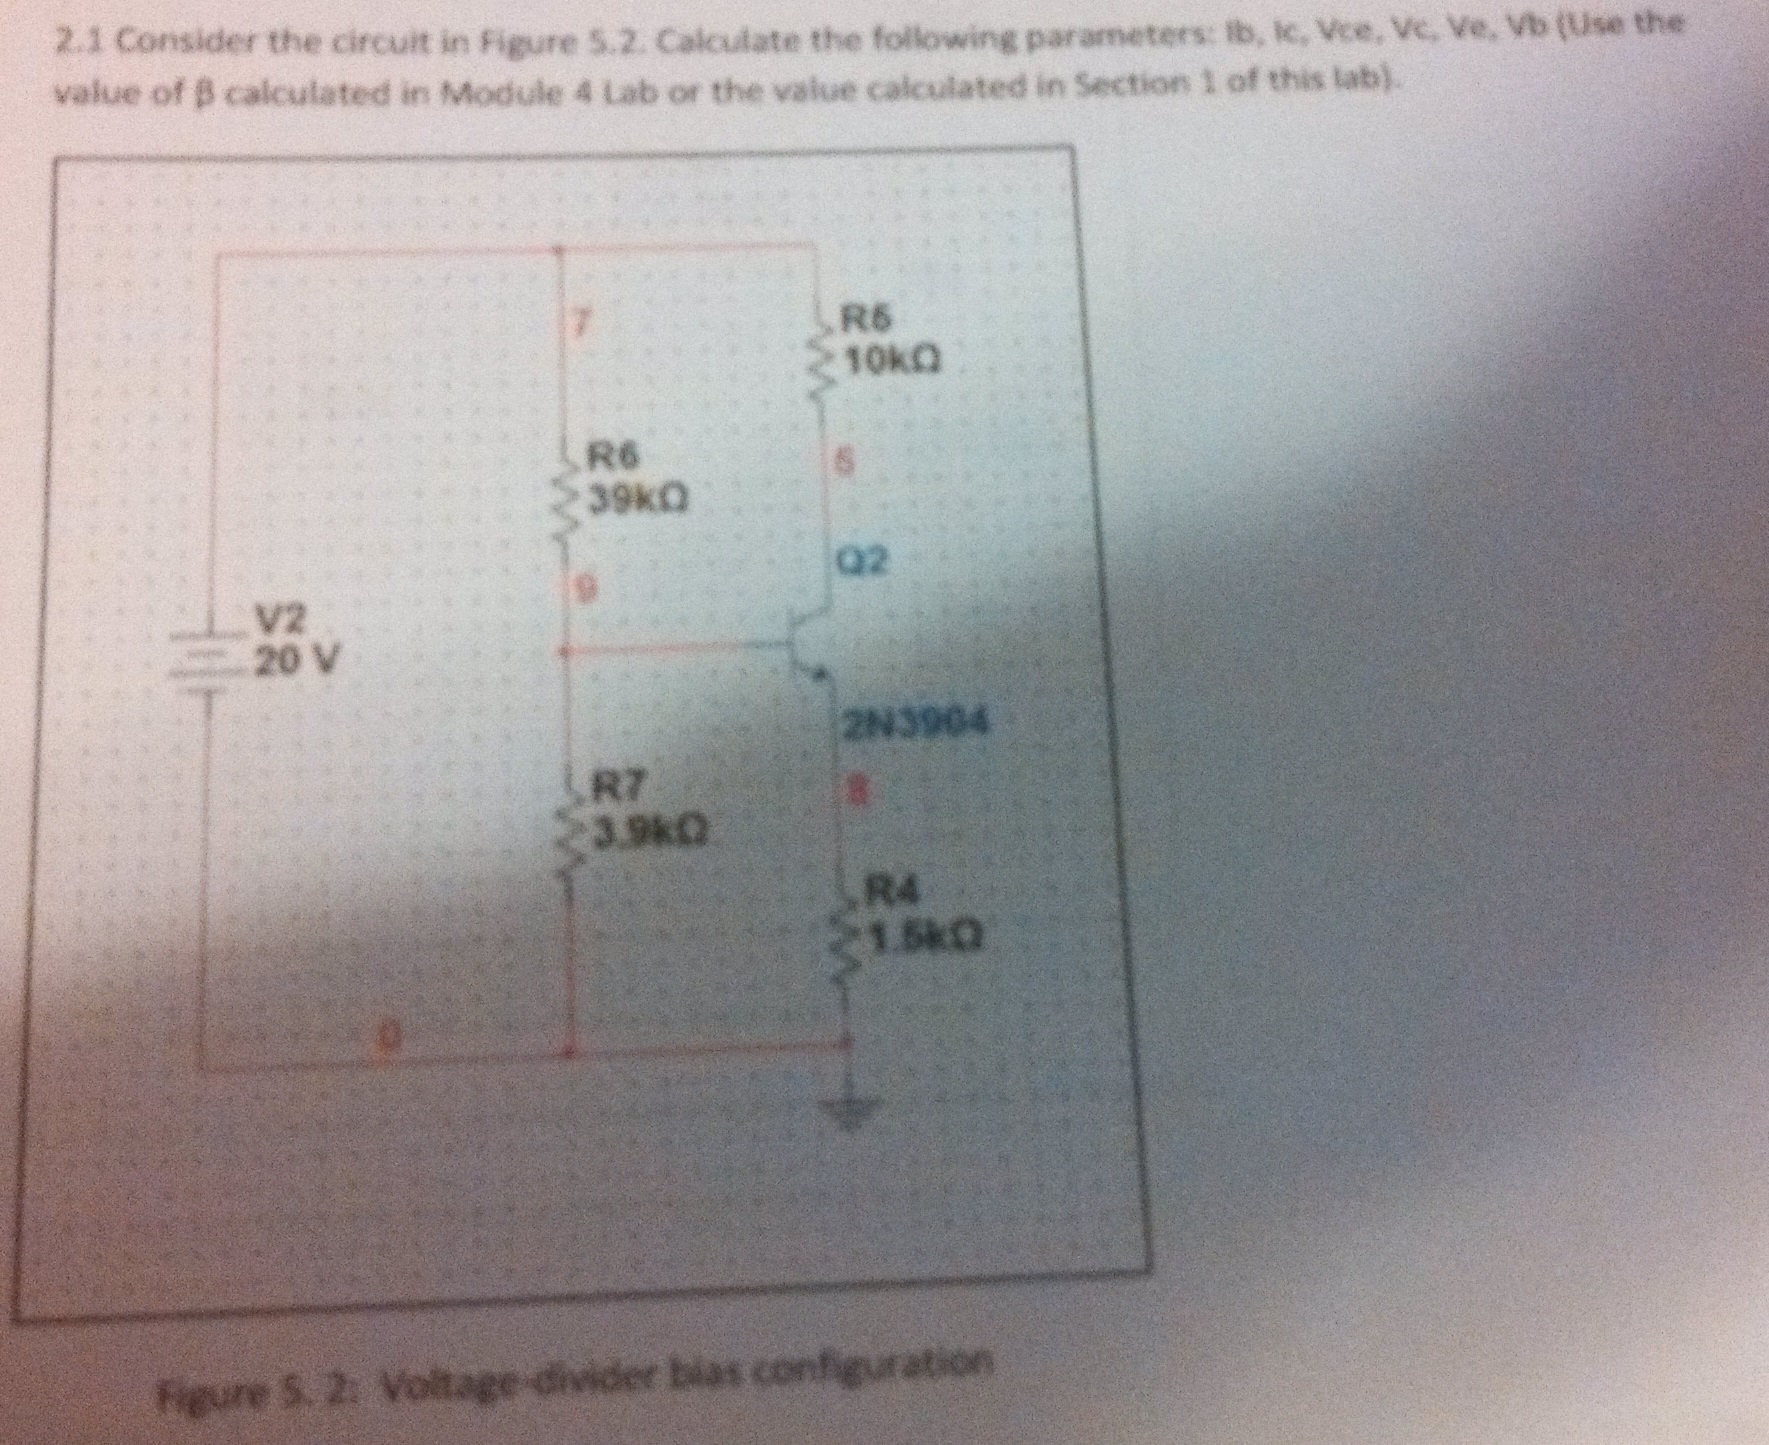 Consider the circuit in Figure 5.2. calculate the